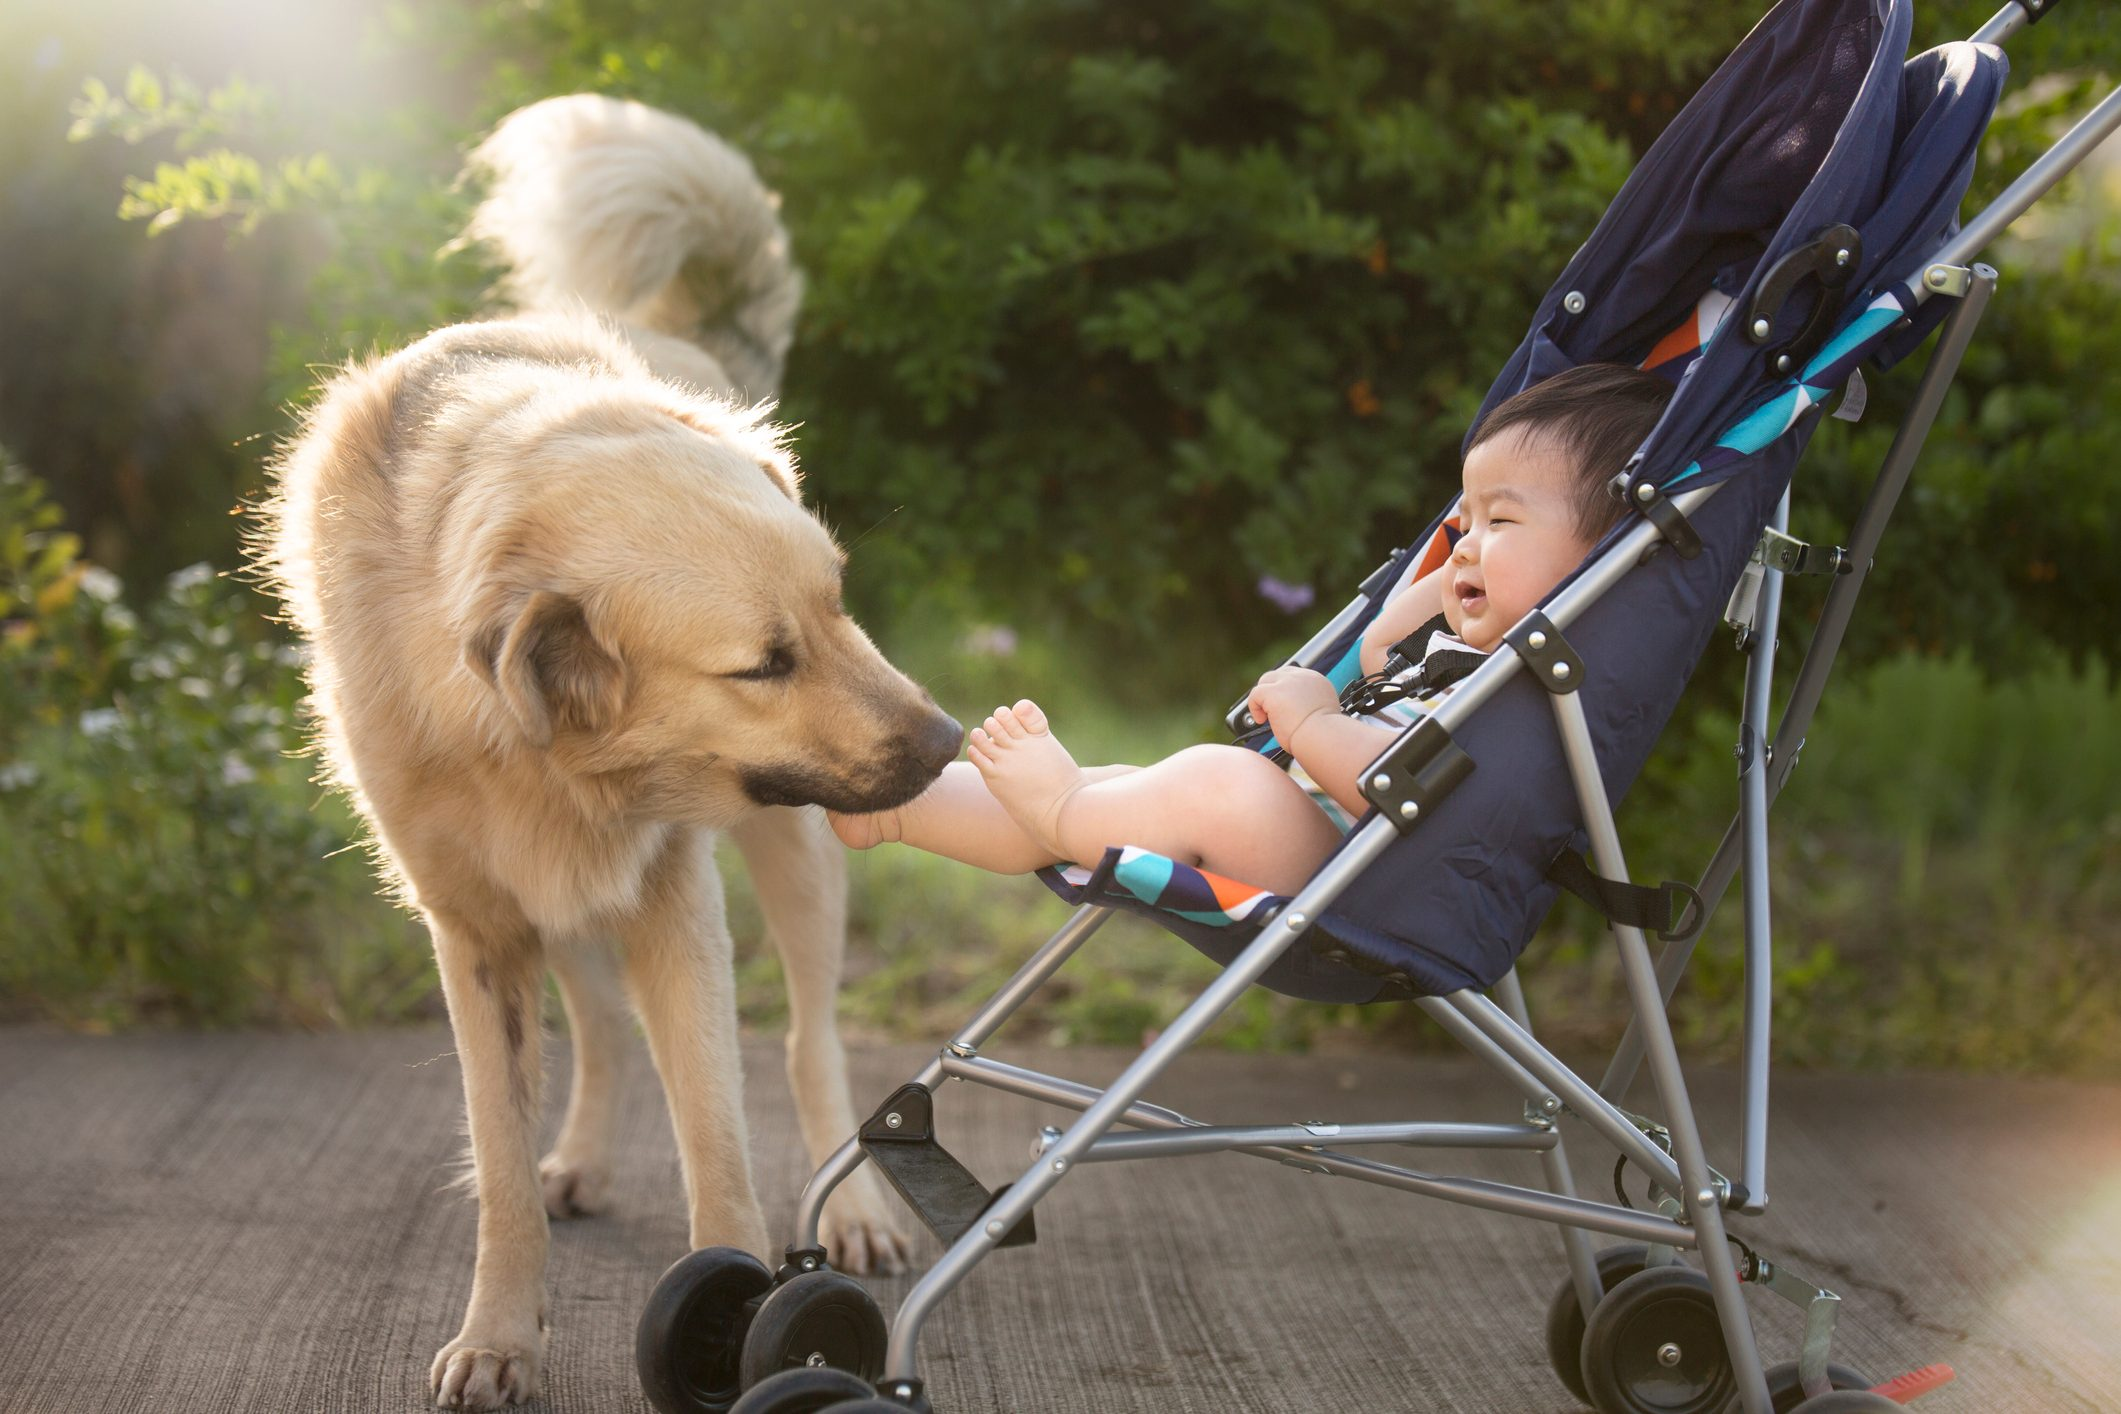 Asian toddler boy tickled by a dog in baby stroller.